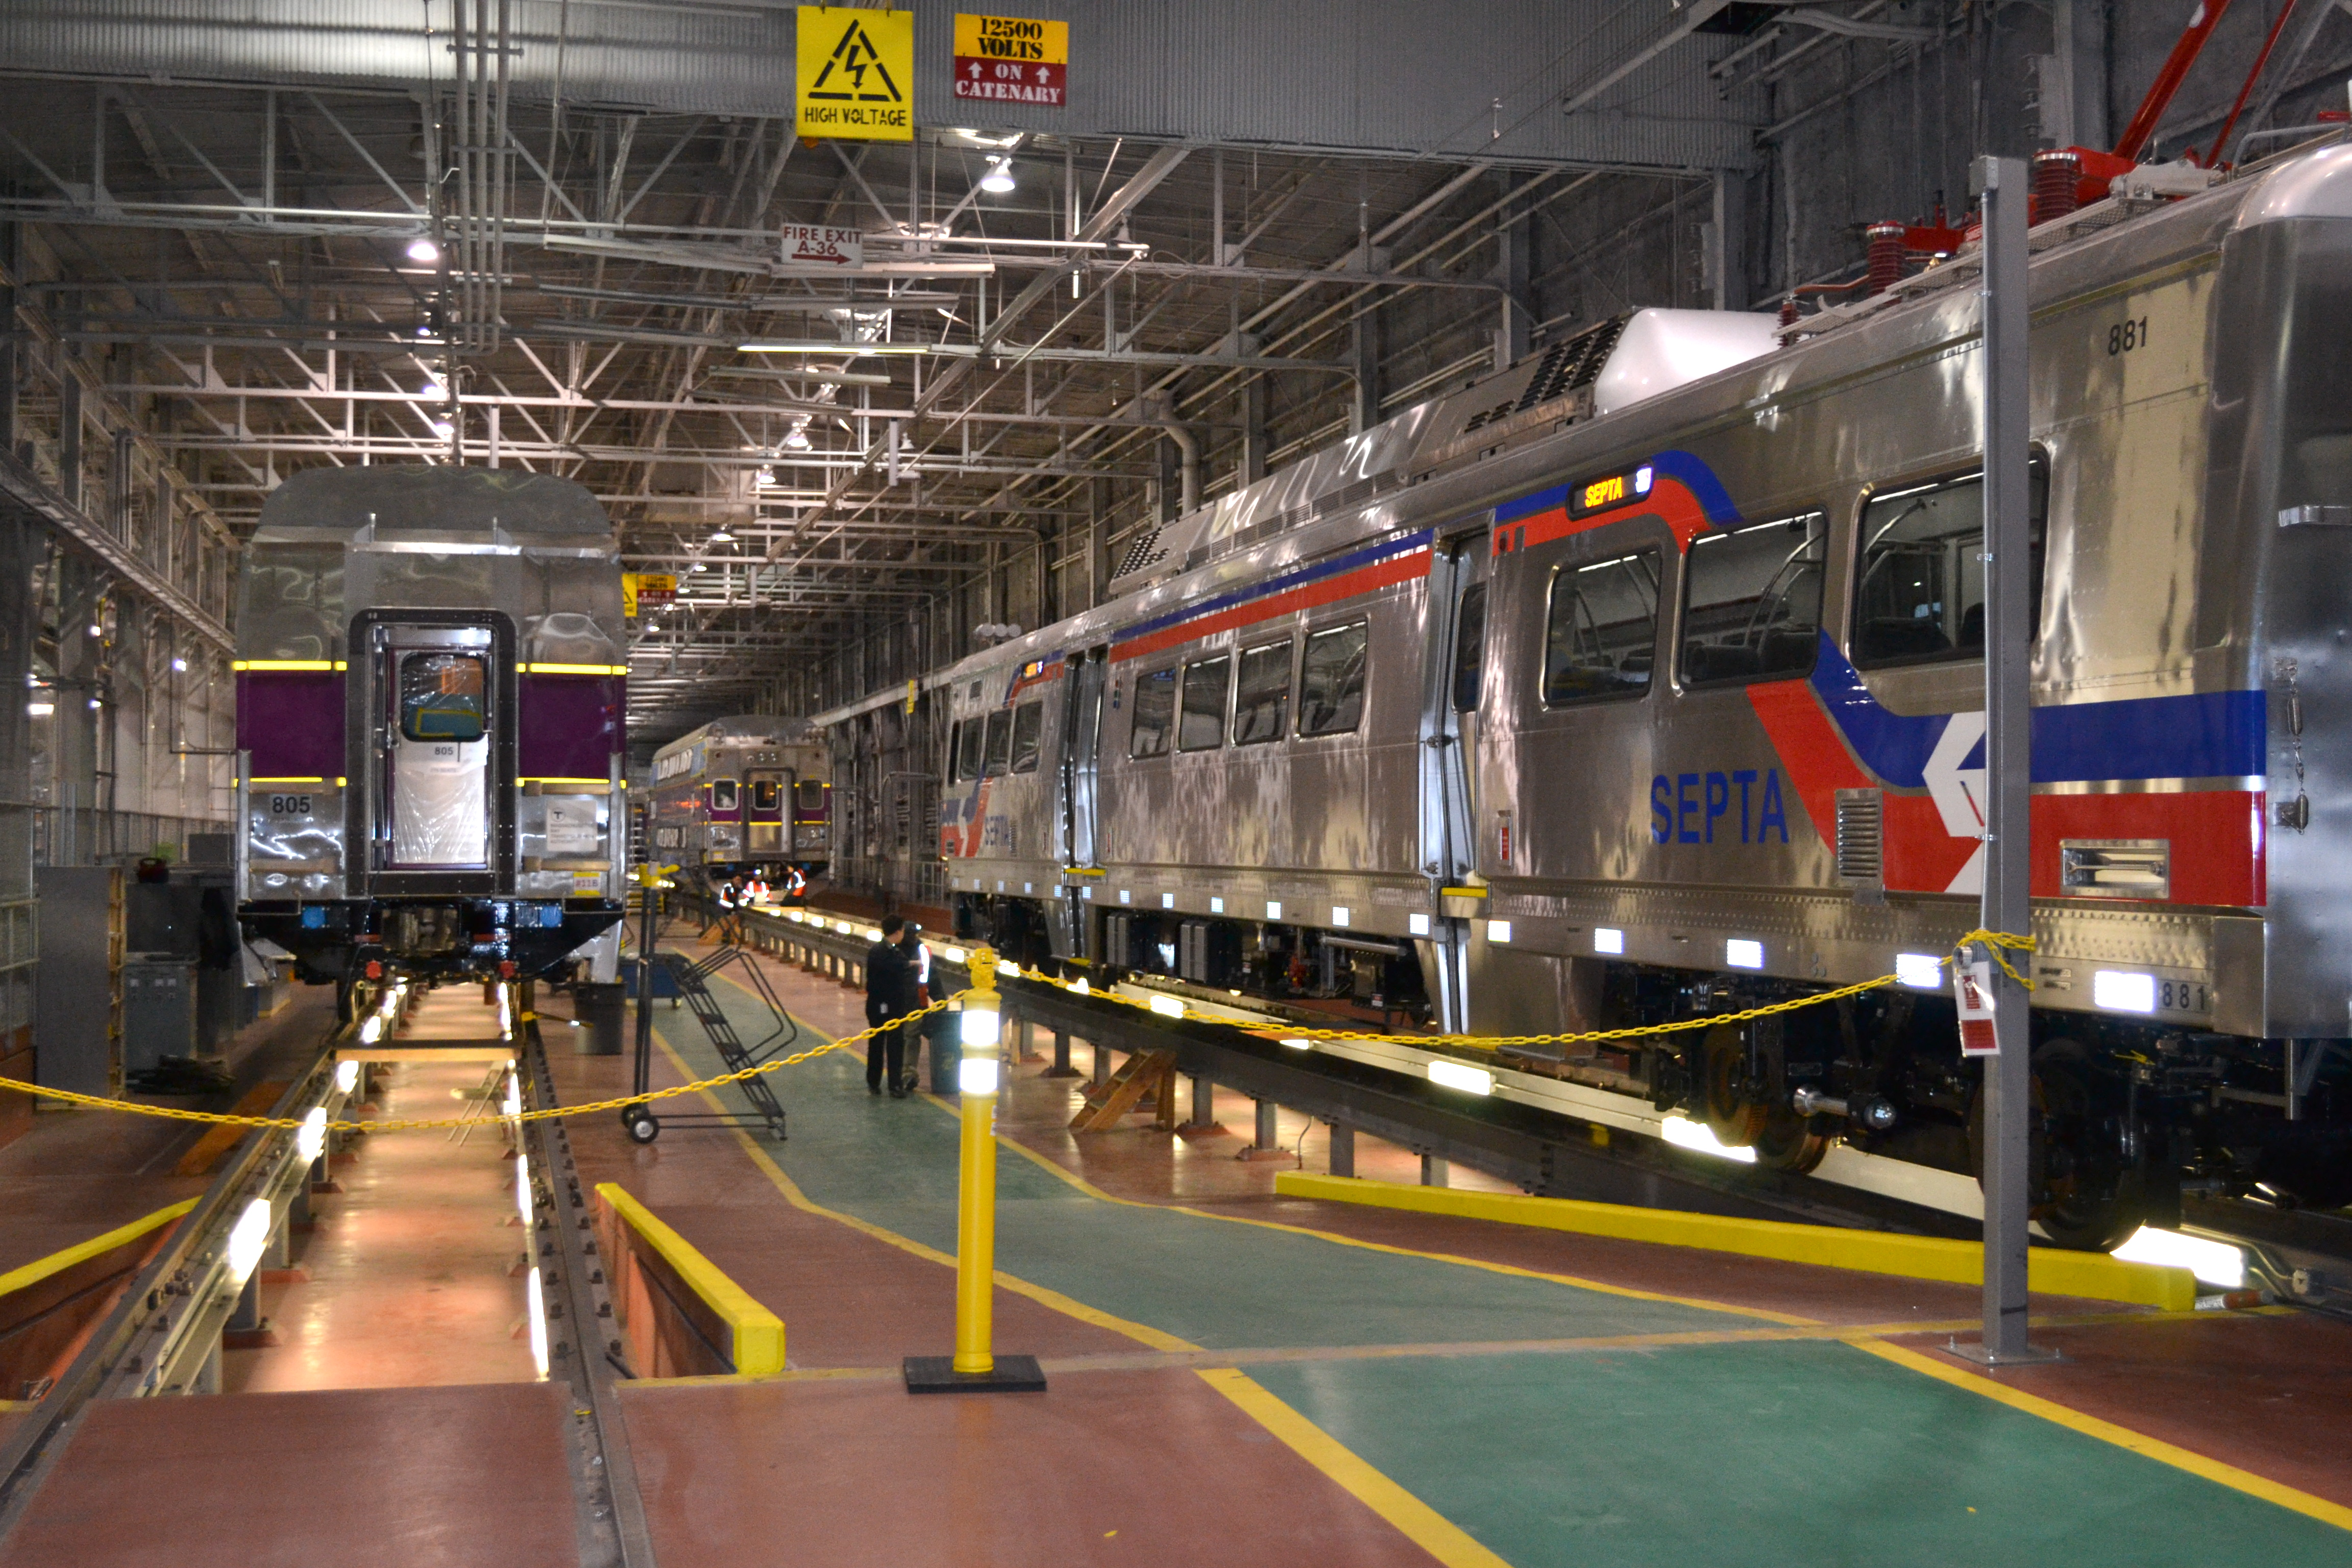 Next Rotem will build 75 rail cars for Boston's MBTA and 56 rail cars for Denver's transit system